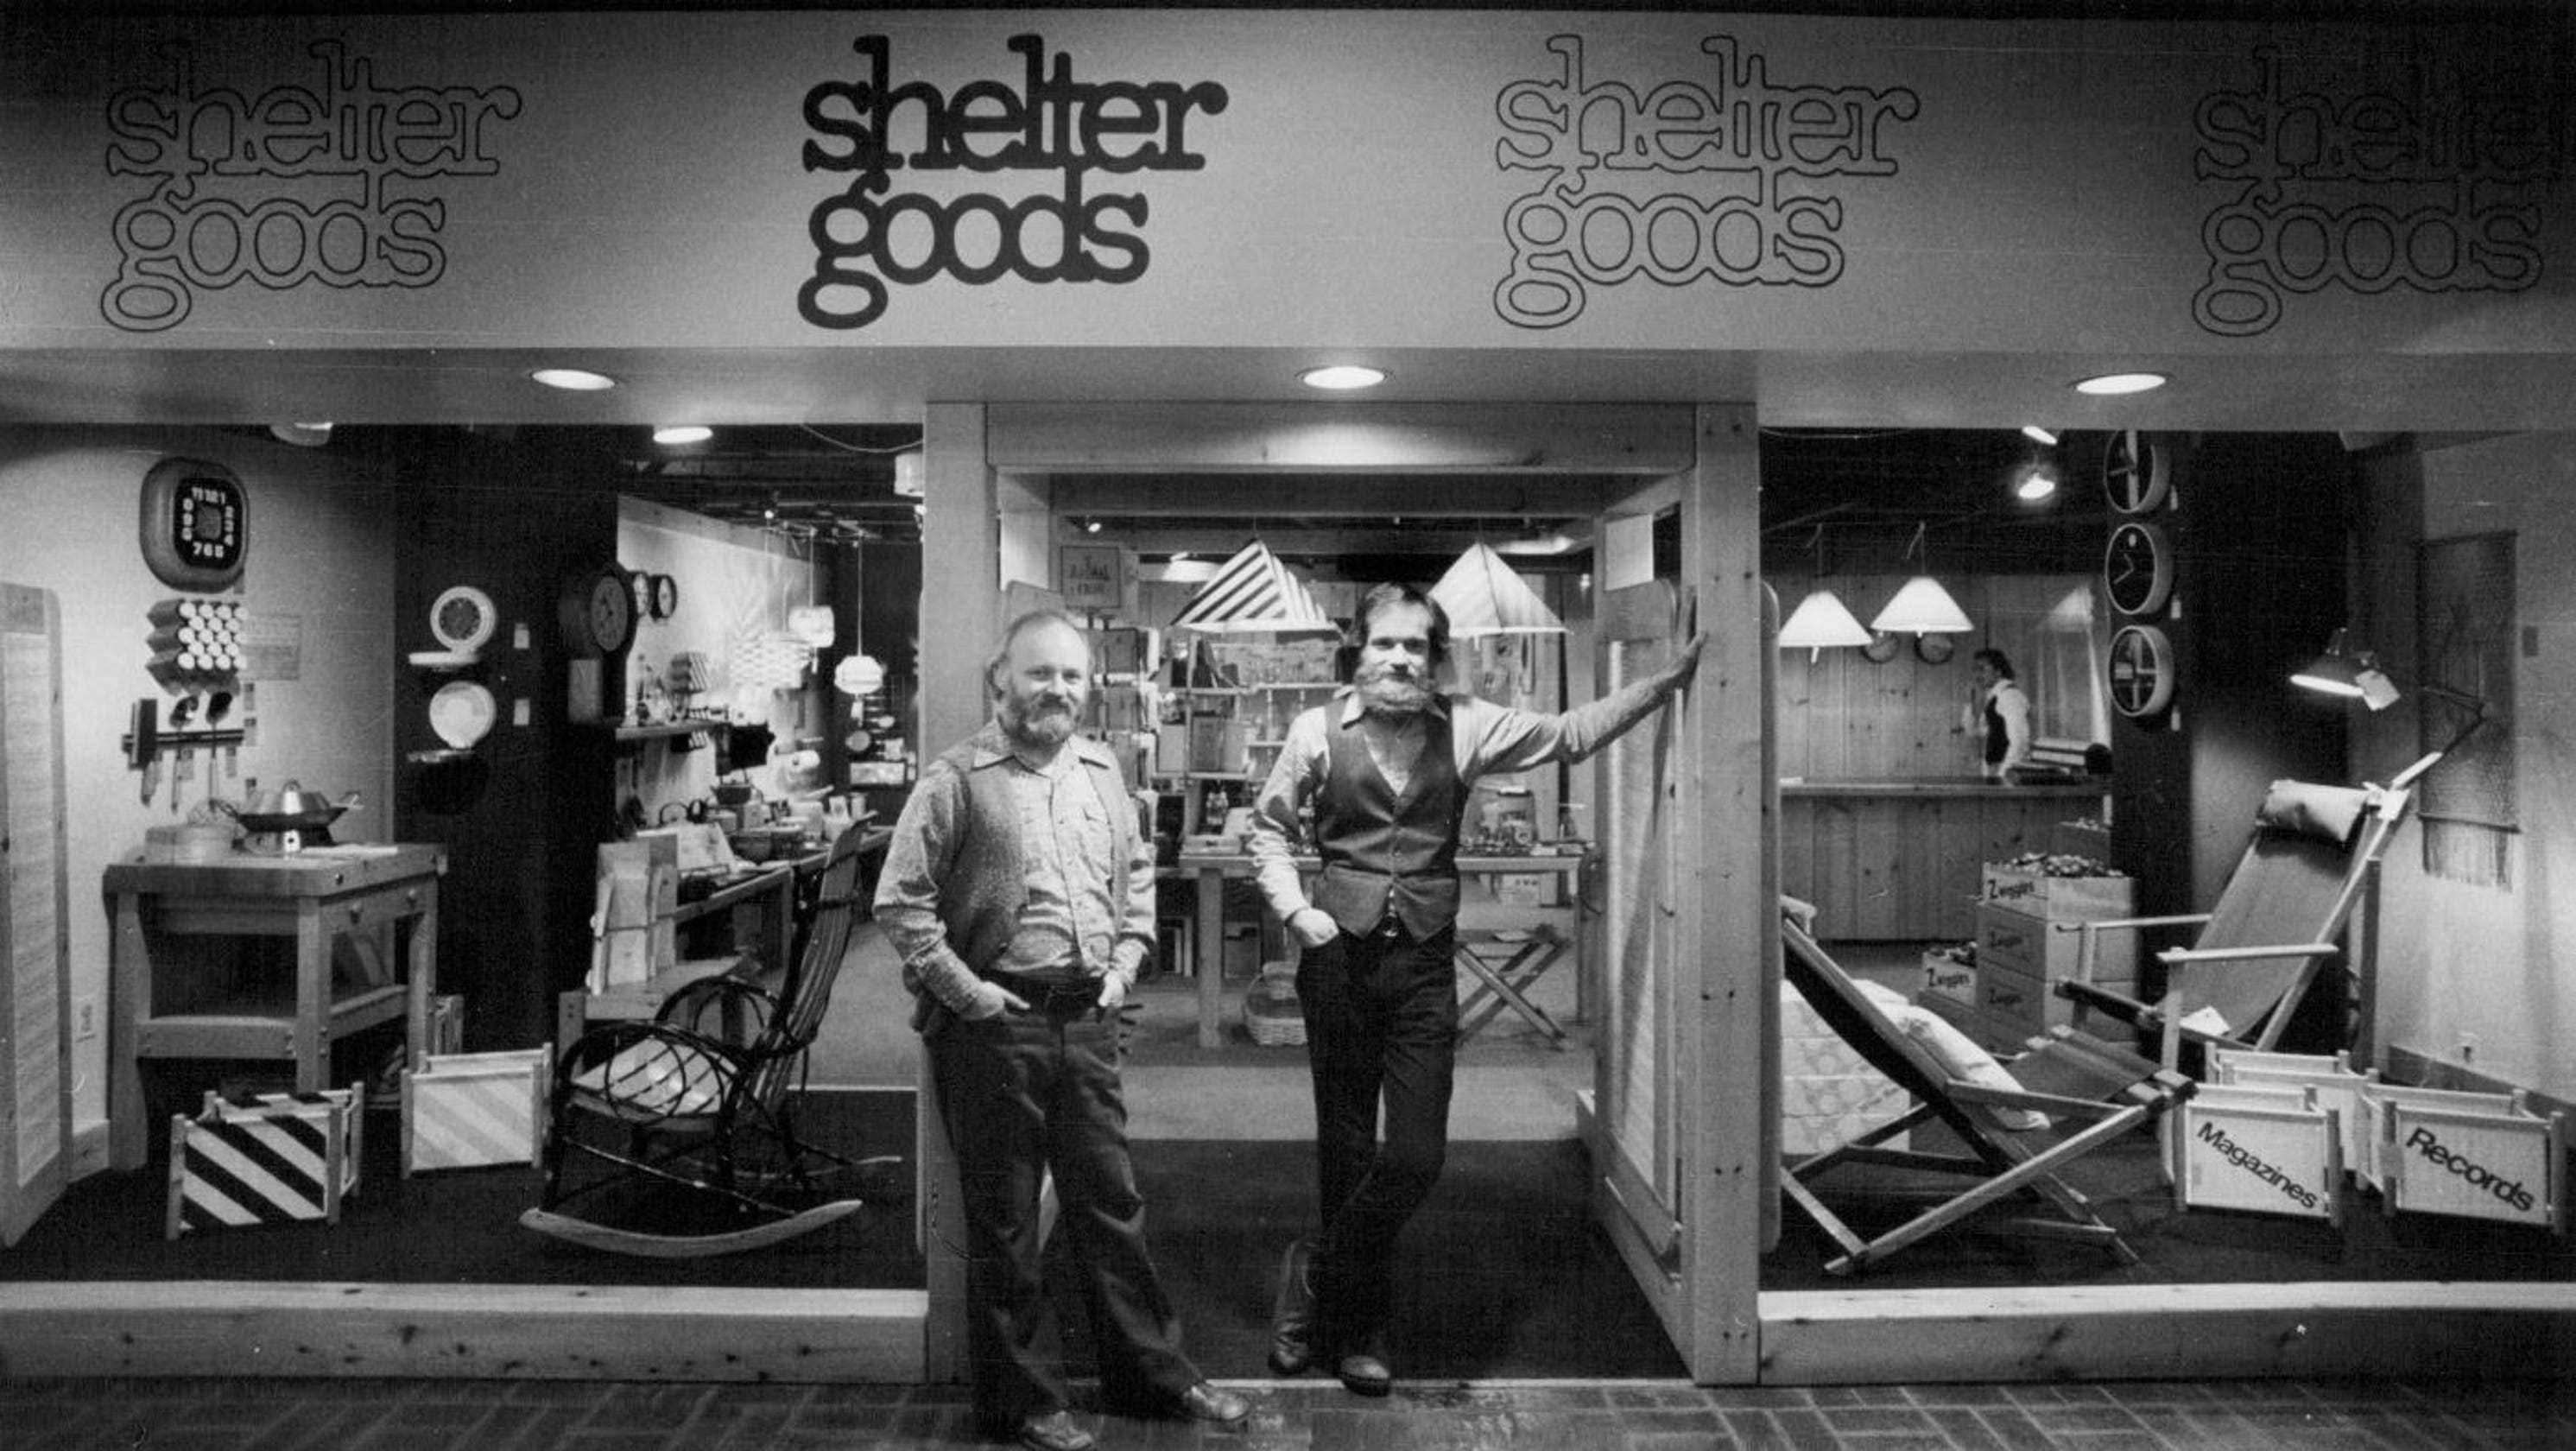 Whatever Happened to     Shelter Goods?